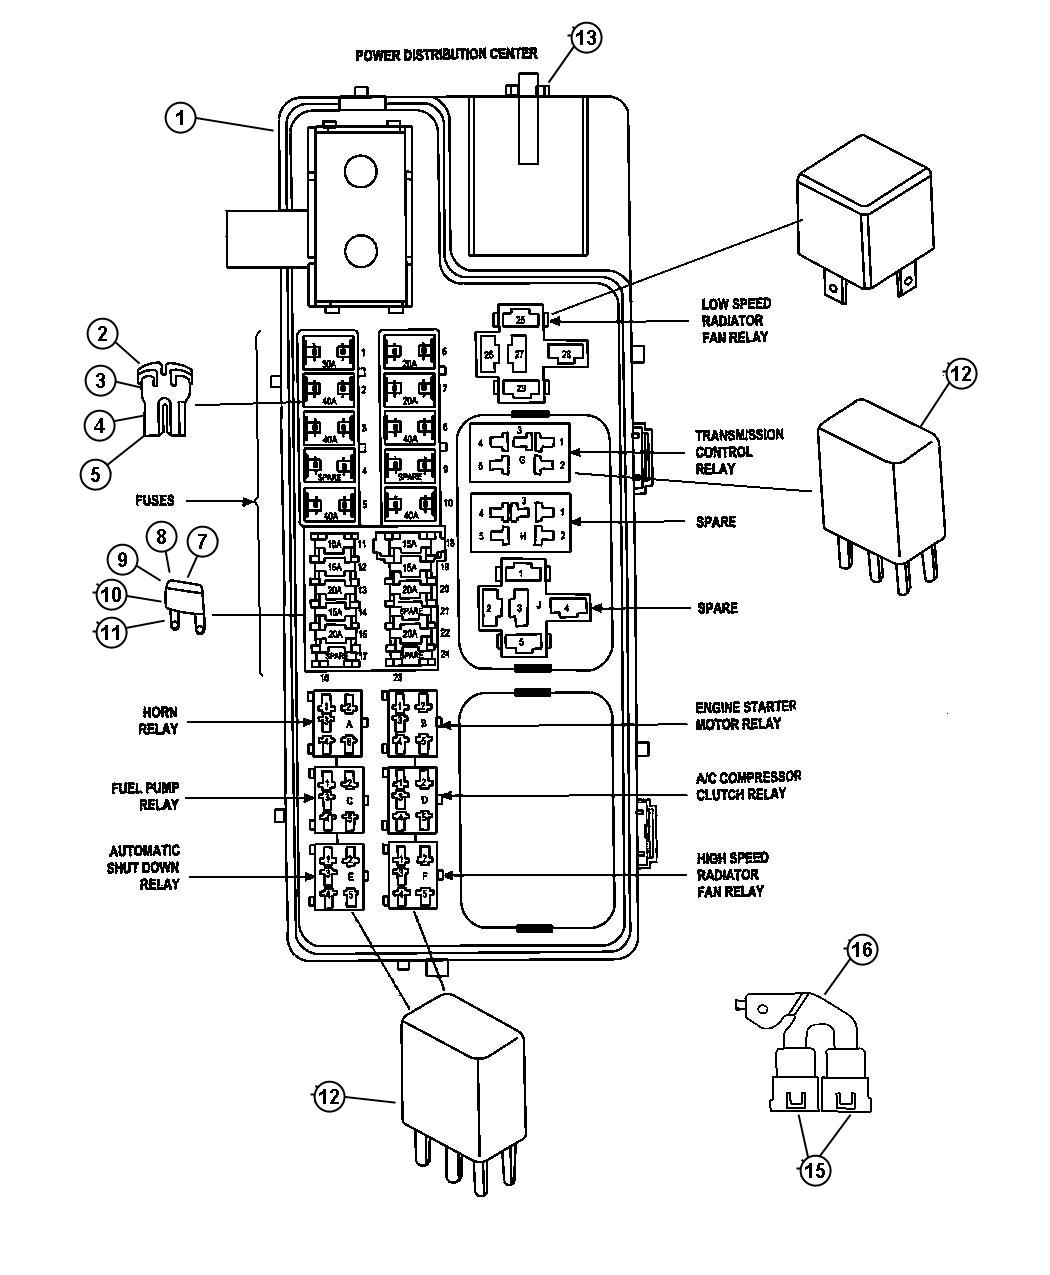 4L60E Pump Diagram besides Ford 300 6 Cylinder Carburetor Diagram in addition Exploded View Results furthermore Pt Cruiser Fan Control Module Location likewise 700r4 Transmission Lock Up Wiring Diagrams. on chevy truck diagrams